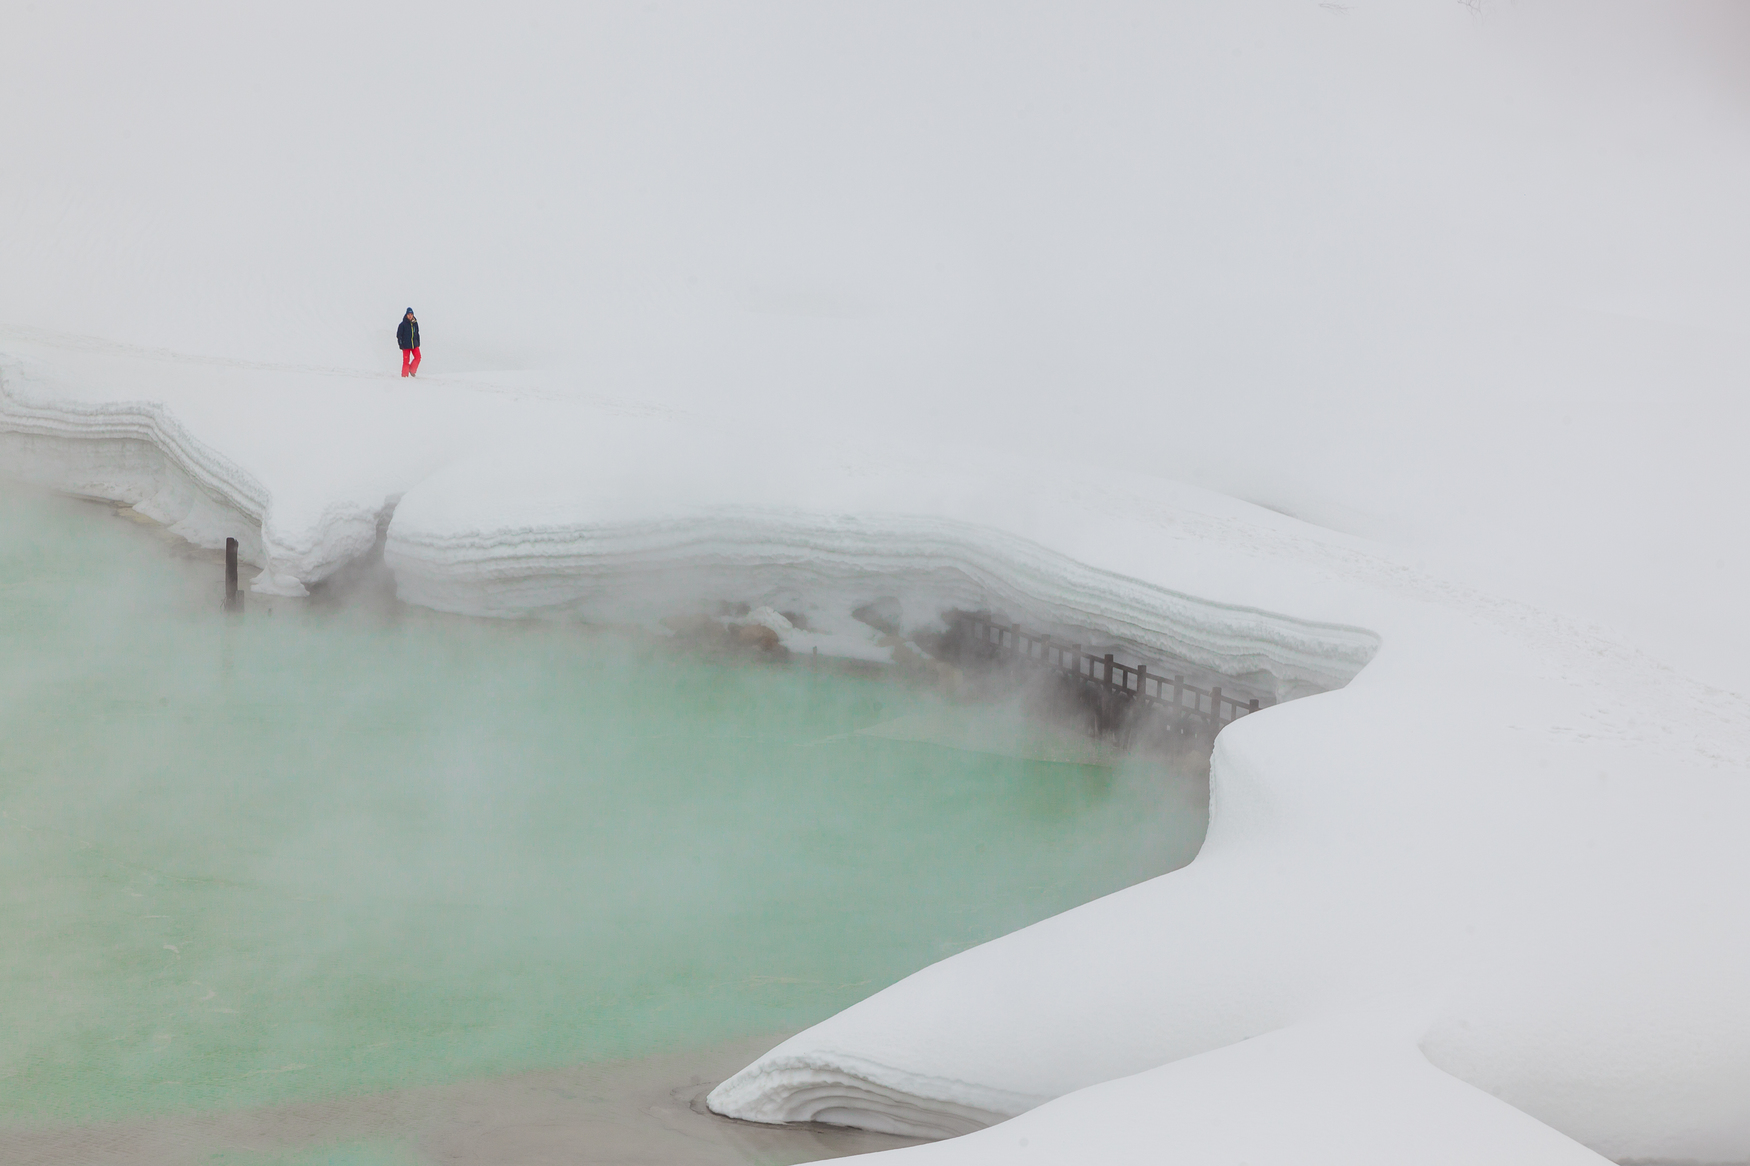 Mabey Ski_Japan_Niseko_Onsen_Nickie Mabey_3.jpg